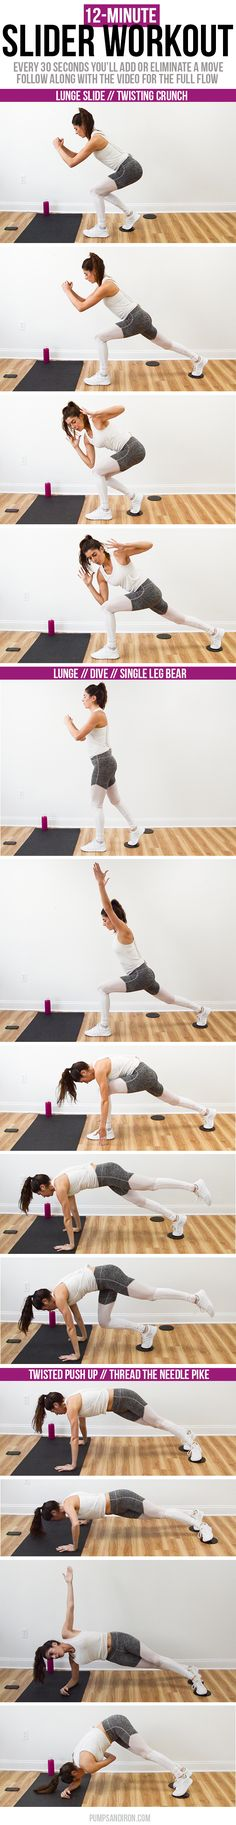 12-Minute Full Body Slider Workout -- low impact but CHALLENGING! Follow along with the video to get the whole flow of the sequence.